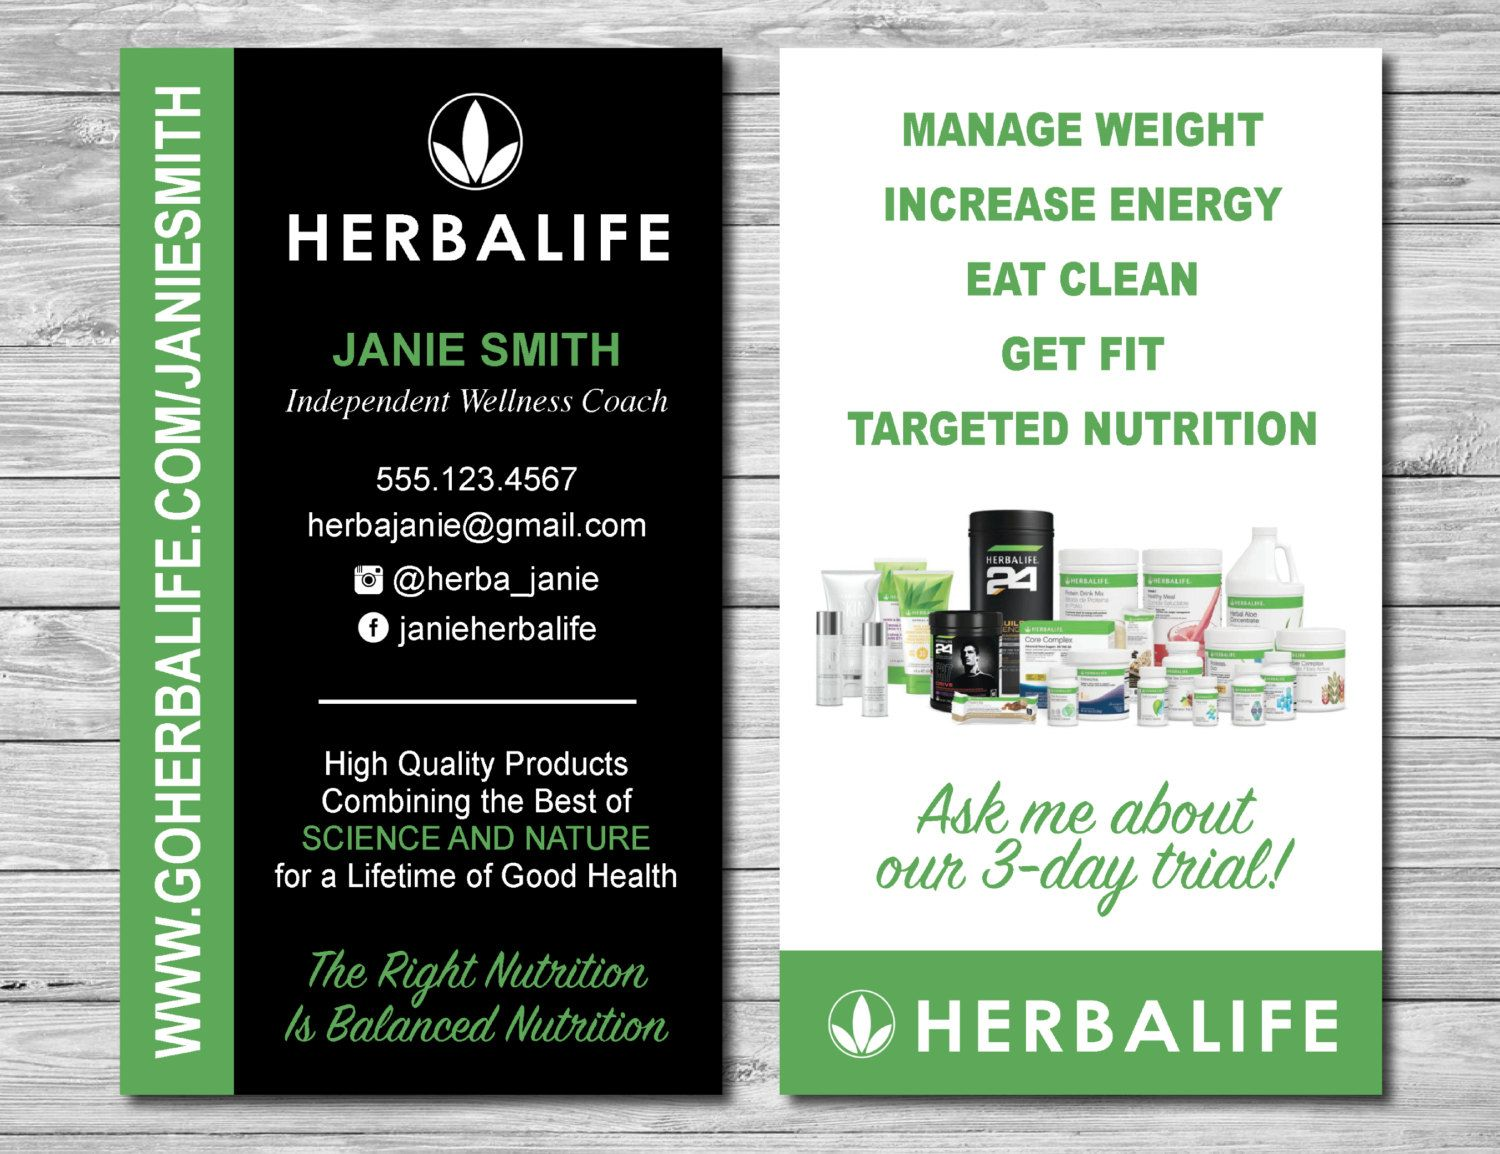 Herbalife business cards for wellness coach and distributor by herbalife business cards for wellness coach and distributor by kellibdesignstudio on etsy reheart Choice Image